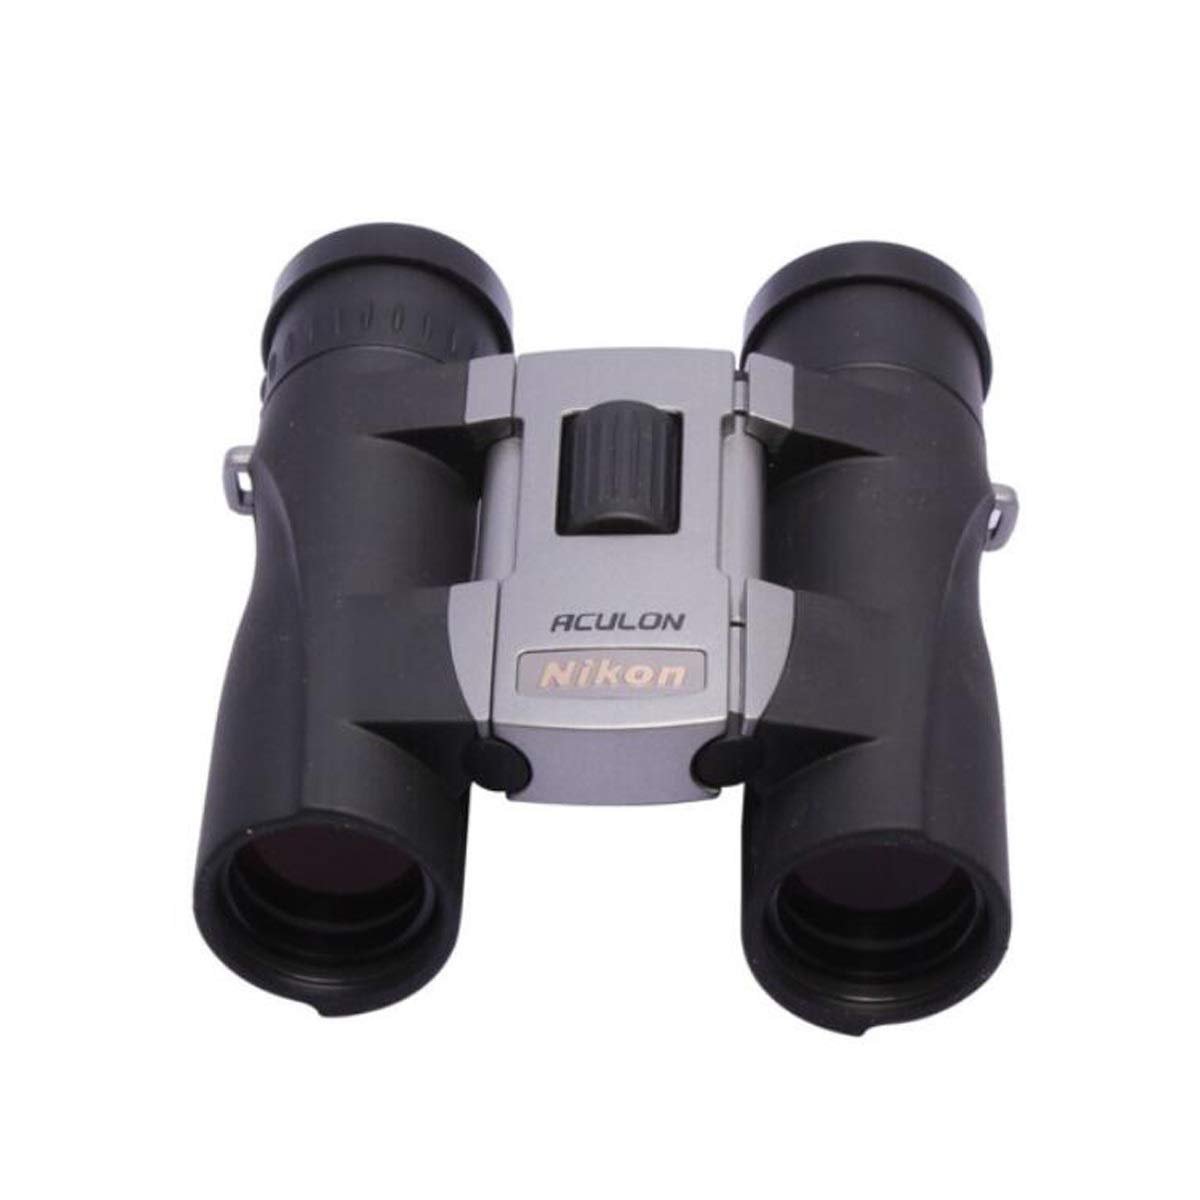 Kaiyitong Telescope, 10X25 Binoculars, High-Definition Outdoor Telescope (Color : Gray)